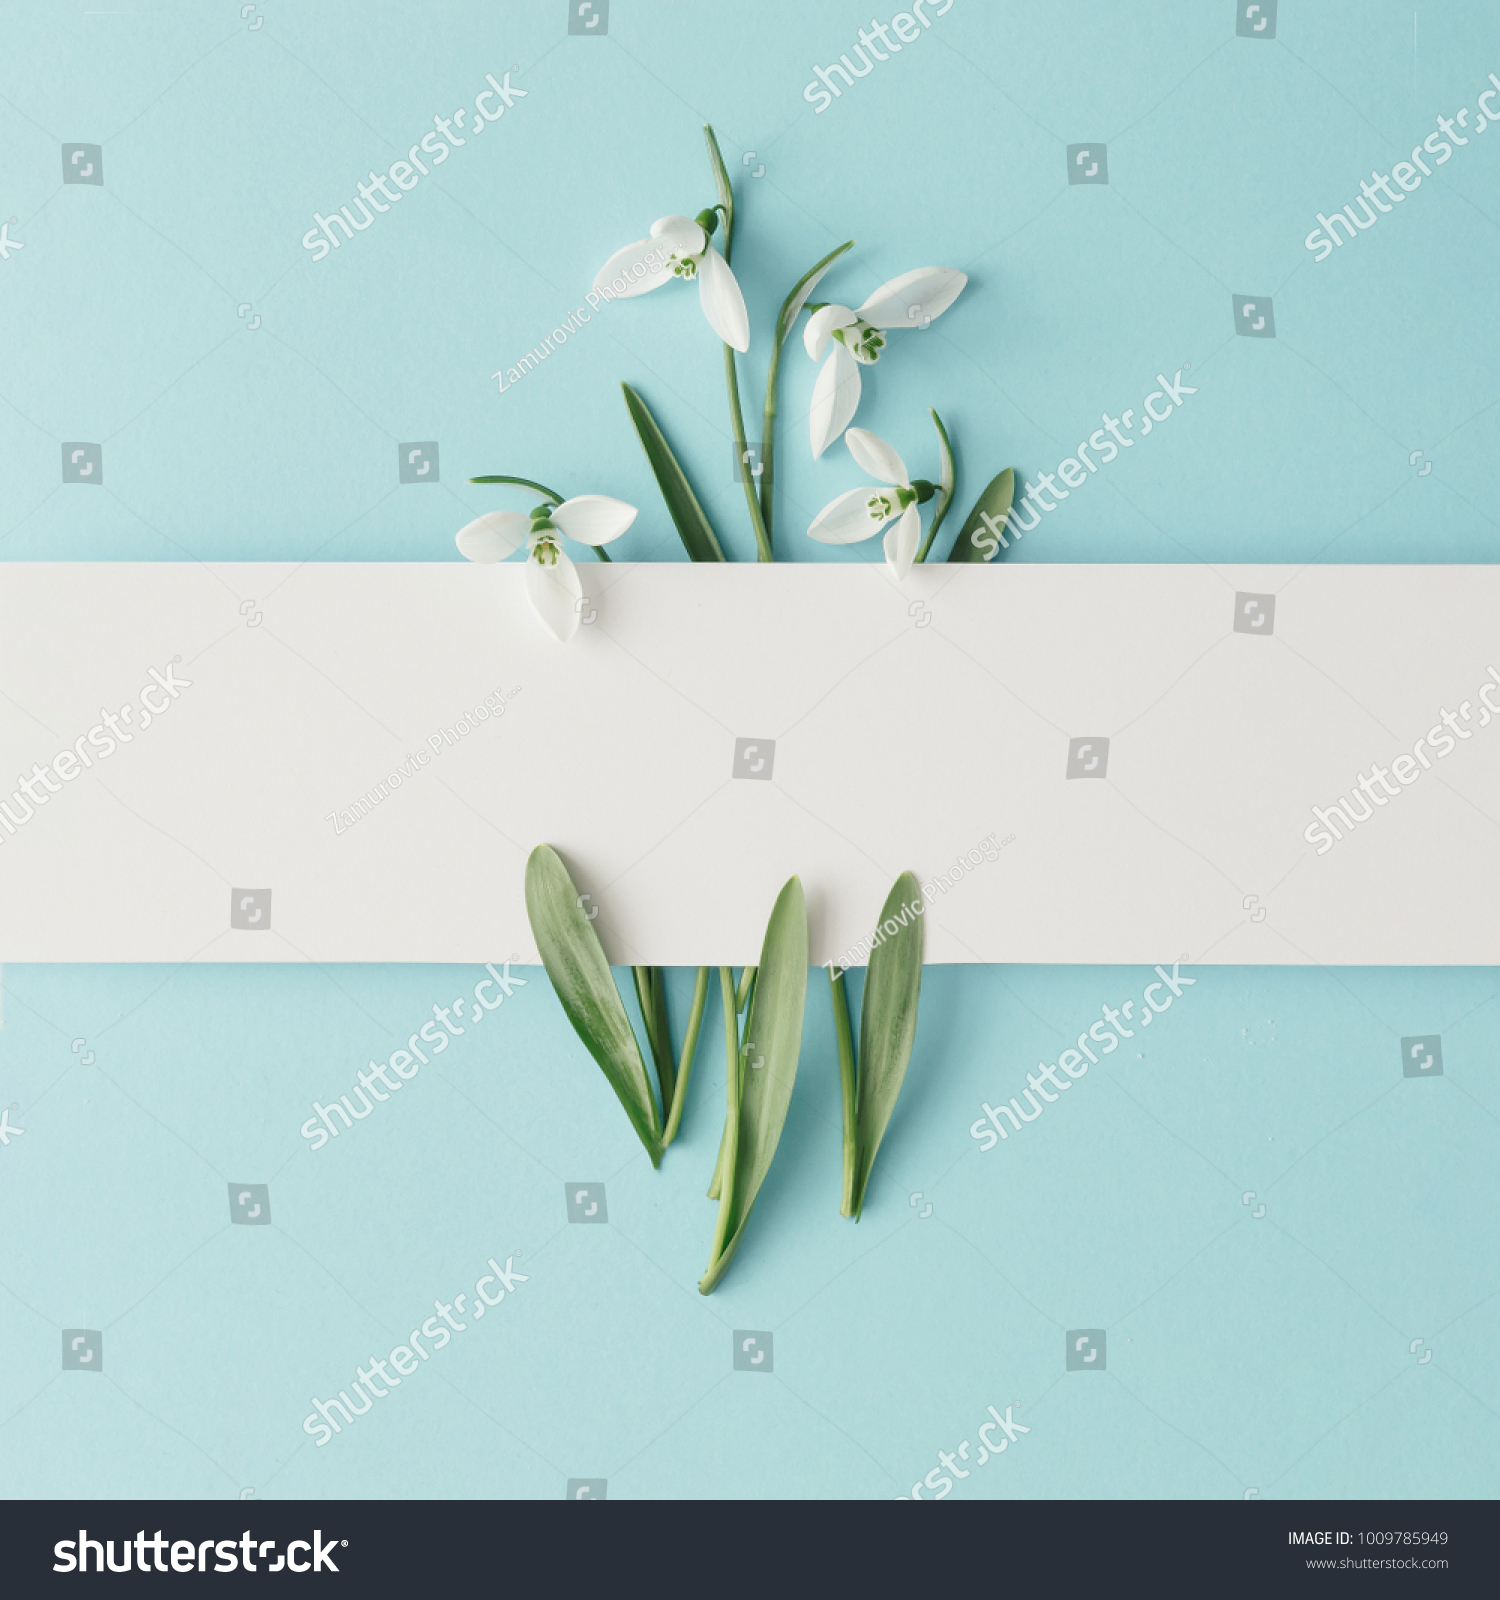 Creative layout made with snowdrop flowers on bright blue  background. Flat lay. Spring minimal concept. #1009785949 - 123PhotoFree.com